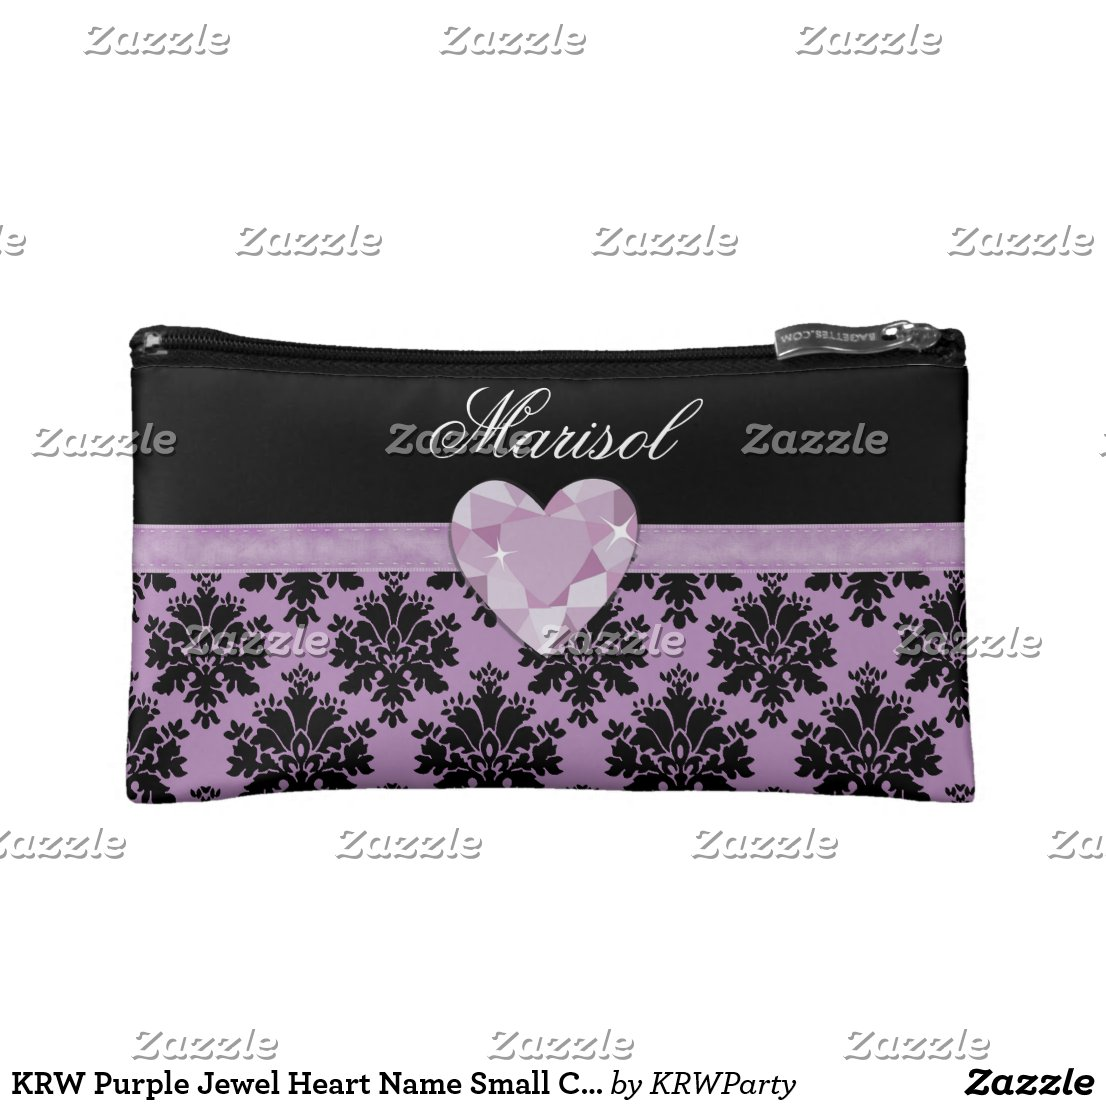 KRW Purple Jewel Heart Cosmetic Bag